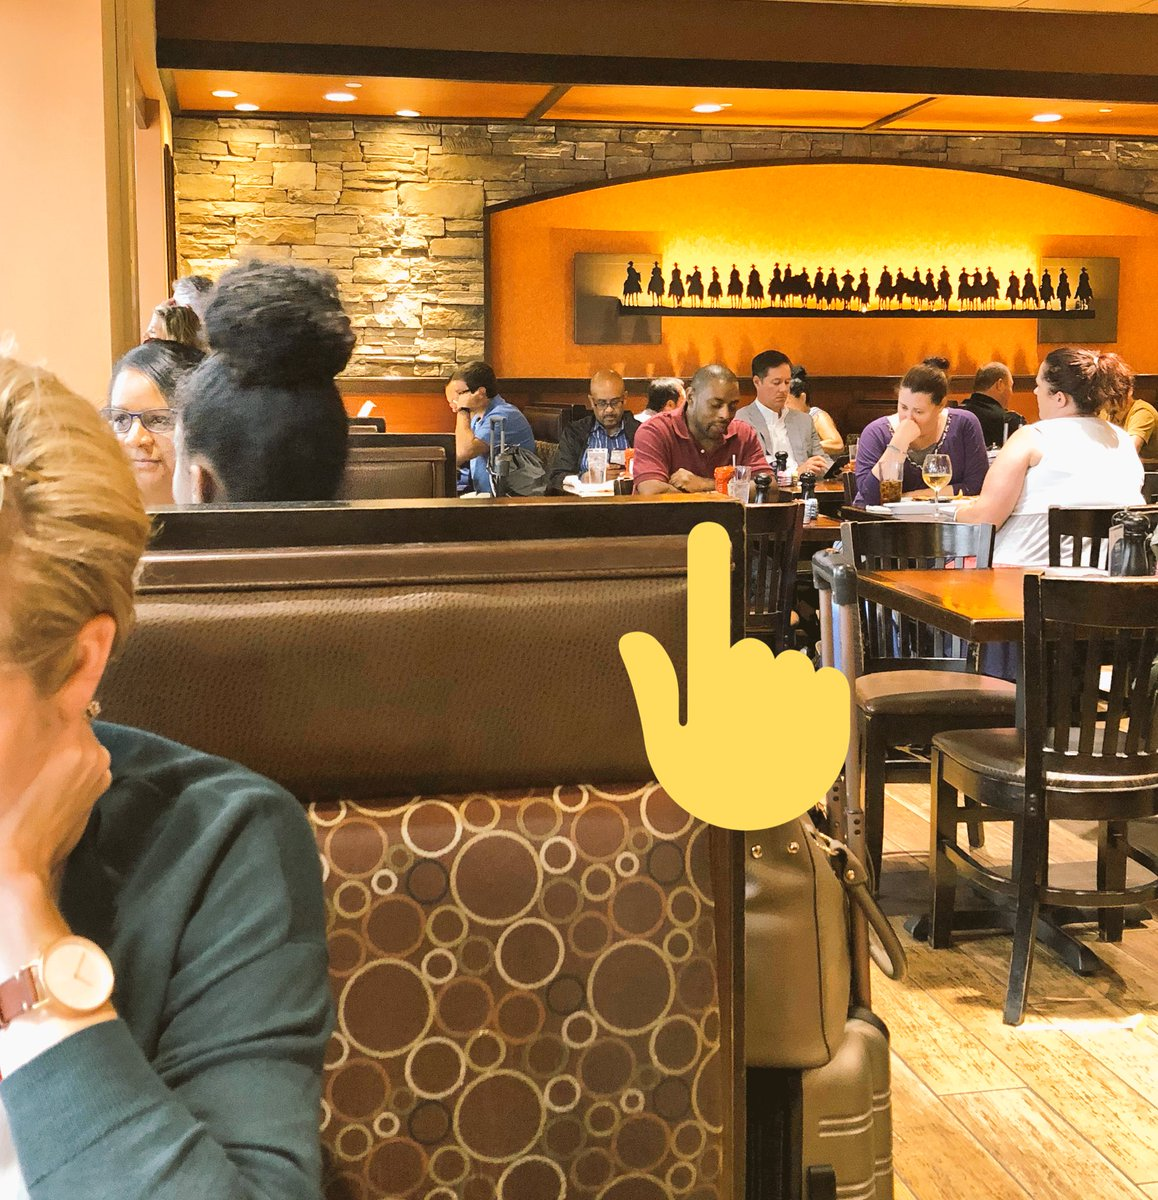 Ben Napier On Twitter Hey Dwyanewade Just Saw Your Brother In The Atlairport Longhornsteaks He Was Talking About Football Probably Gets Tired Of People Asking Him About Basketball Https T Co U8d4dkdpsq